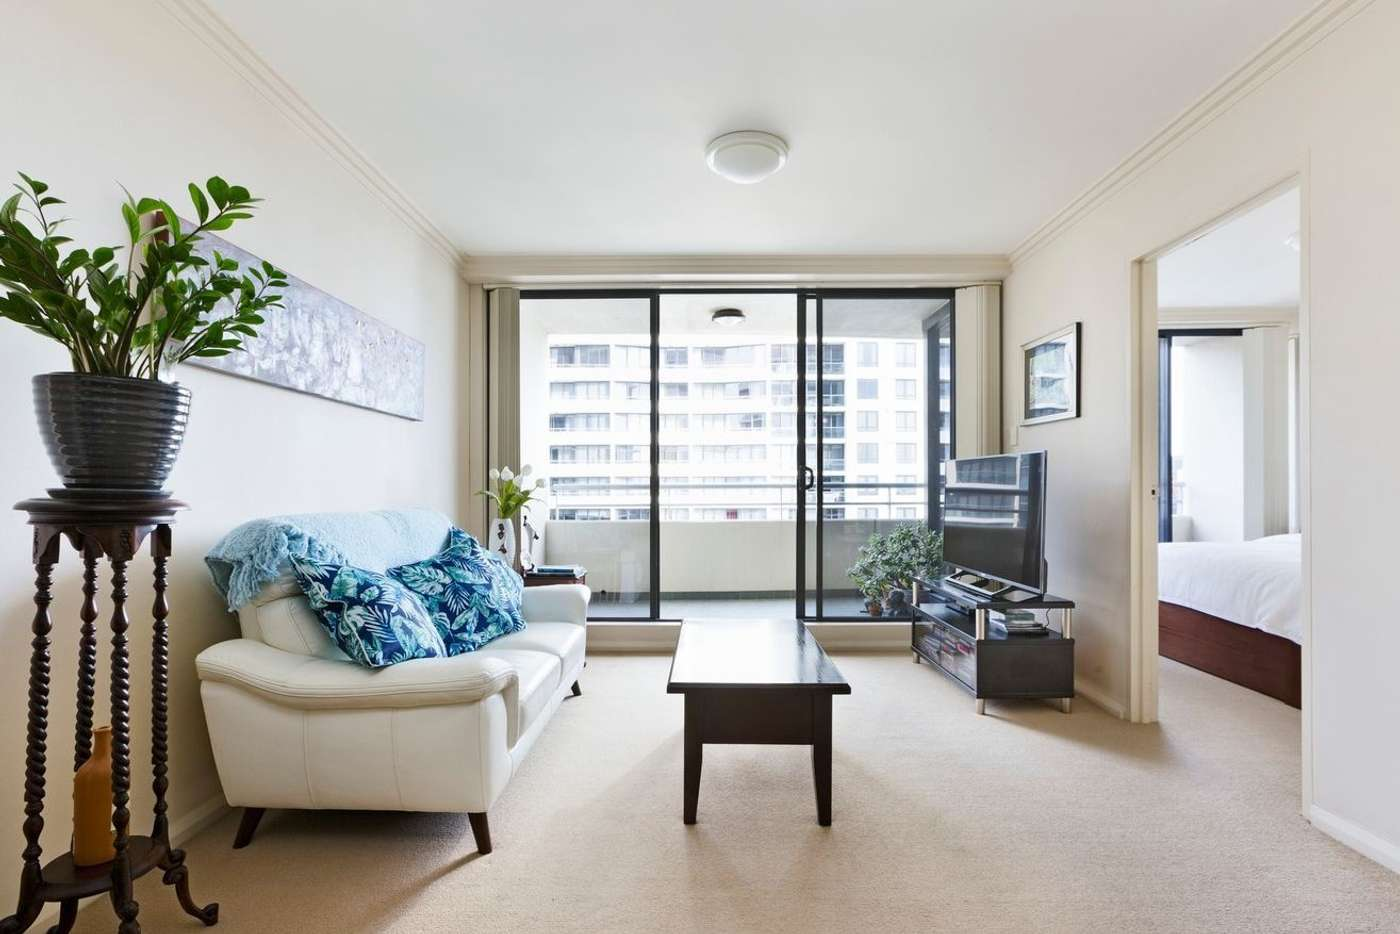 Main view of Homely apartment listing, 1006/1 Sergeants Lane, St Leonards NSW 2065